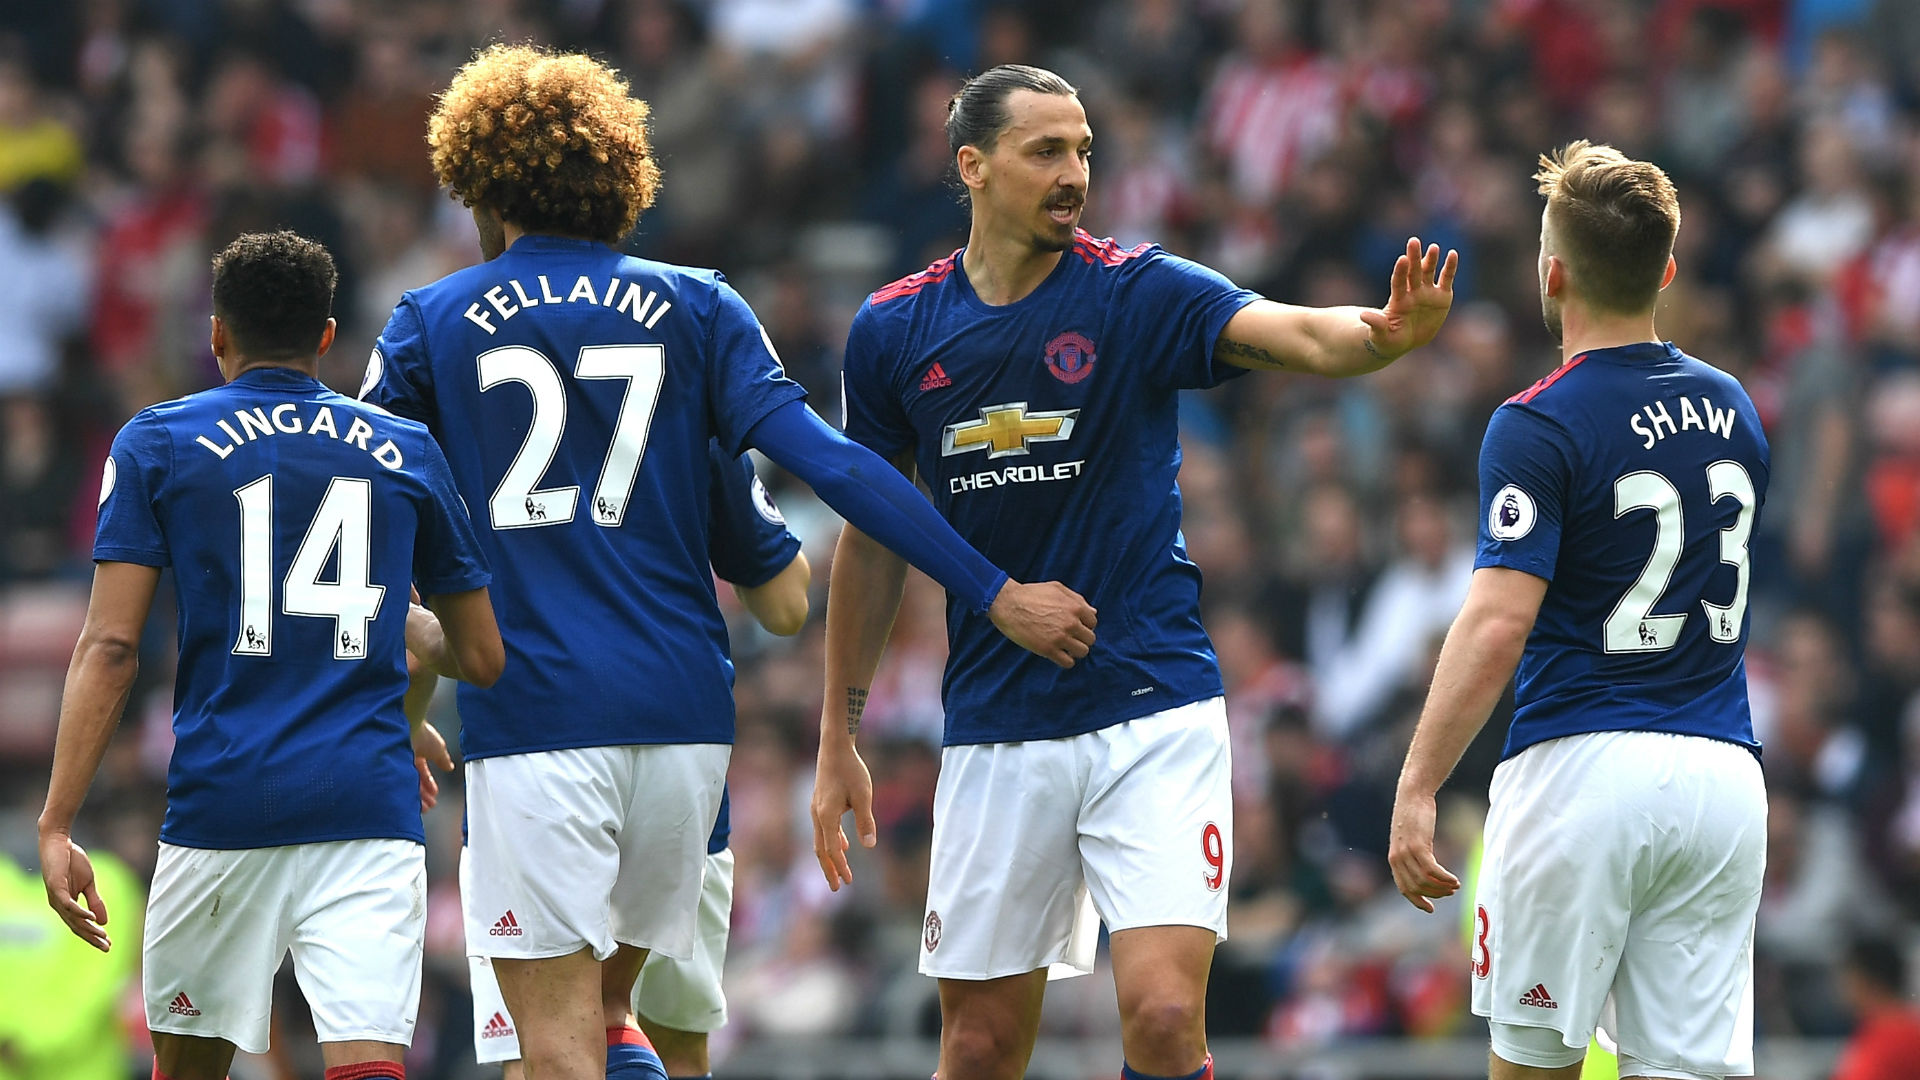 United in comfortable 3-0 win over Sunderland